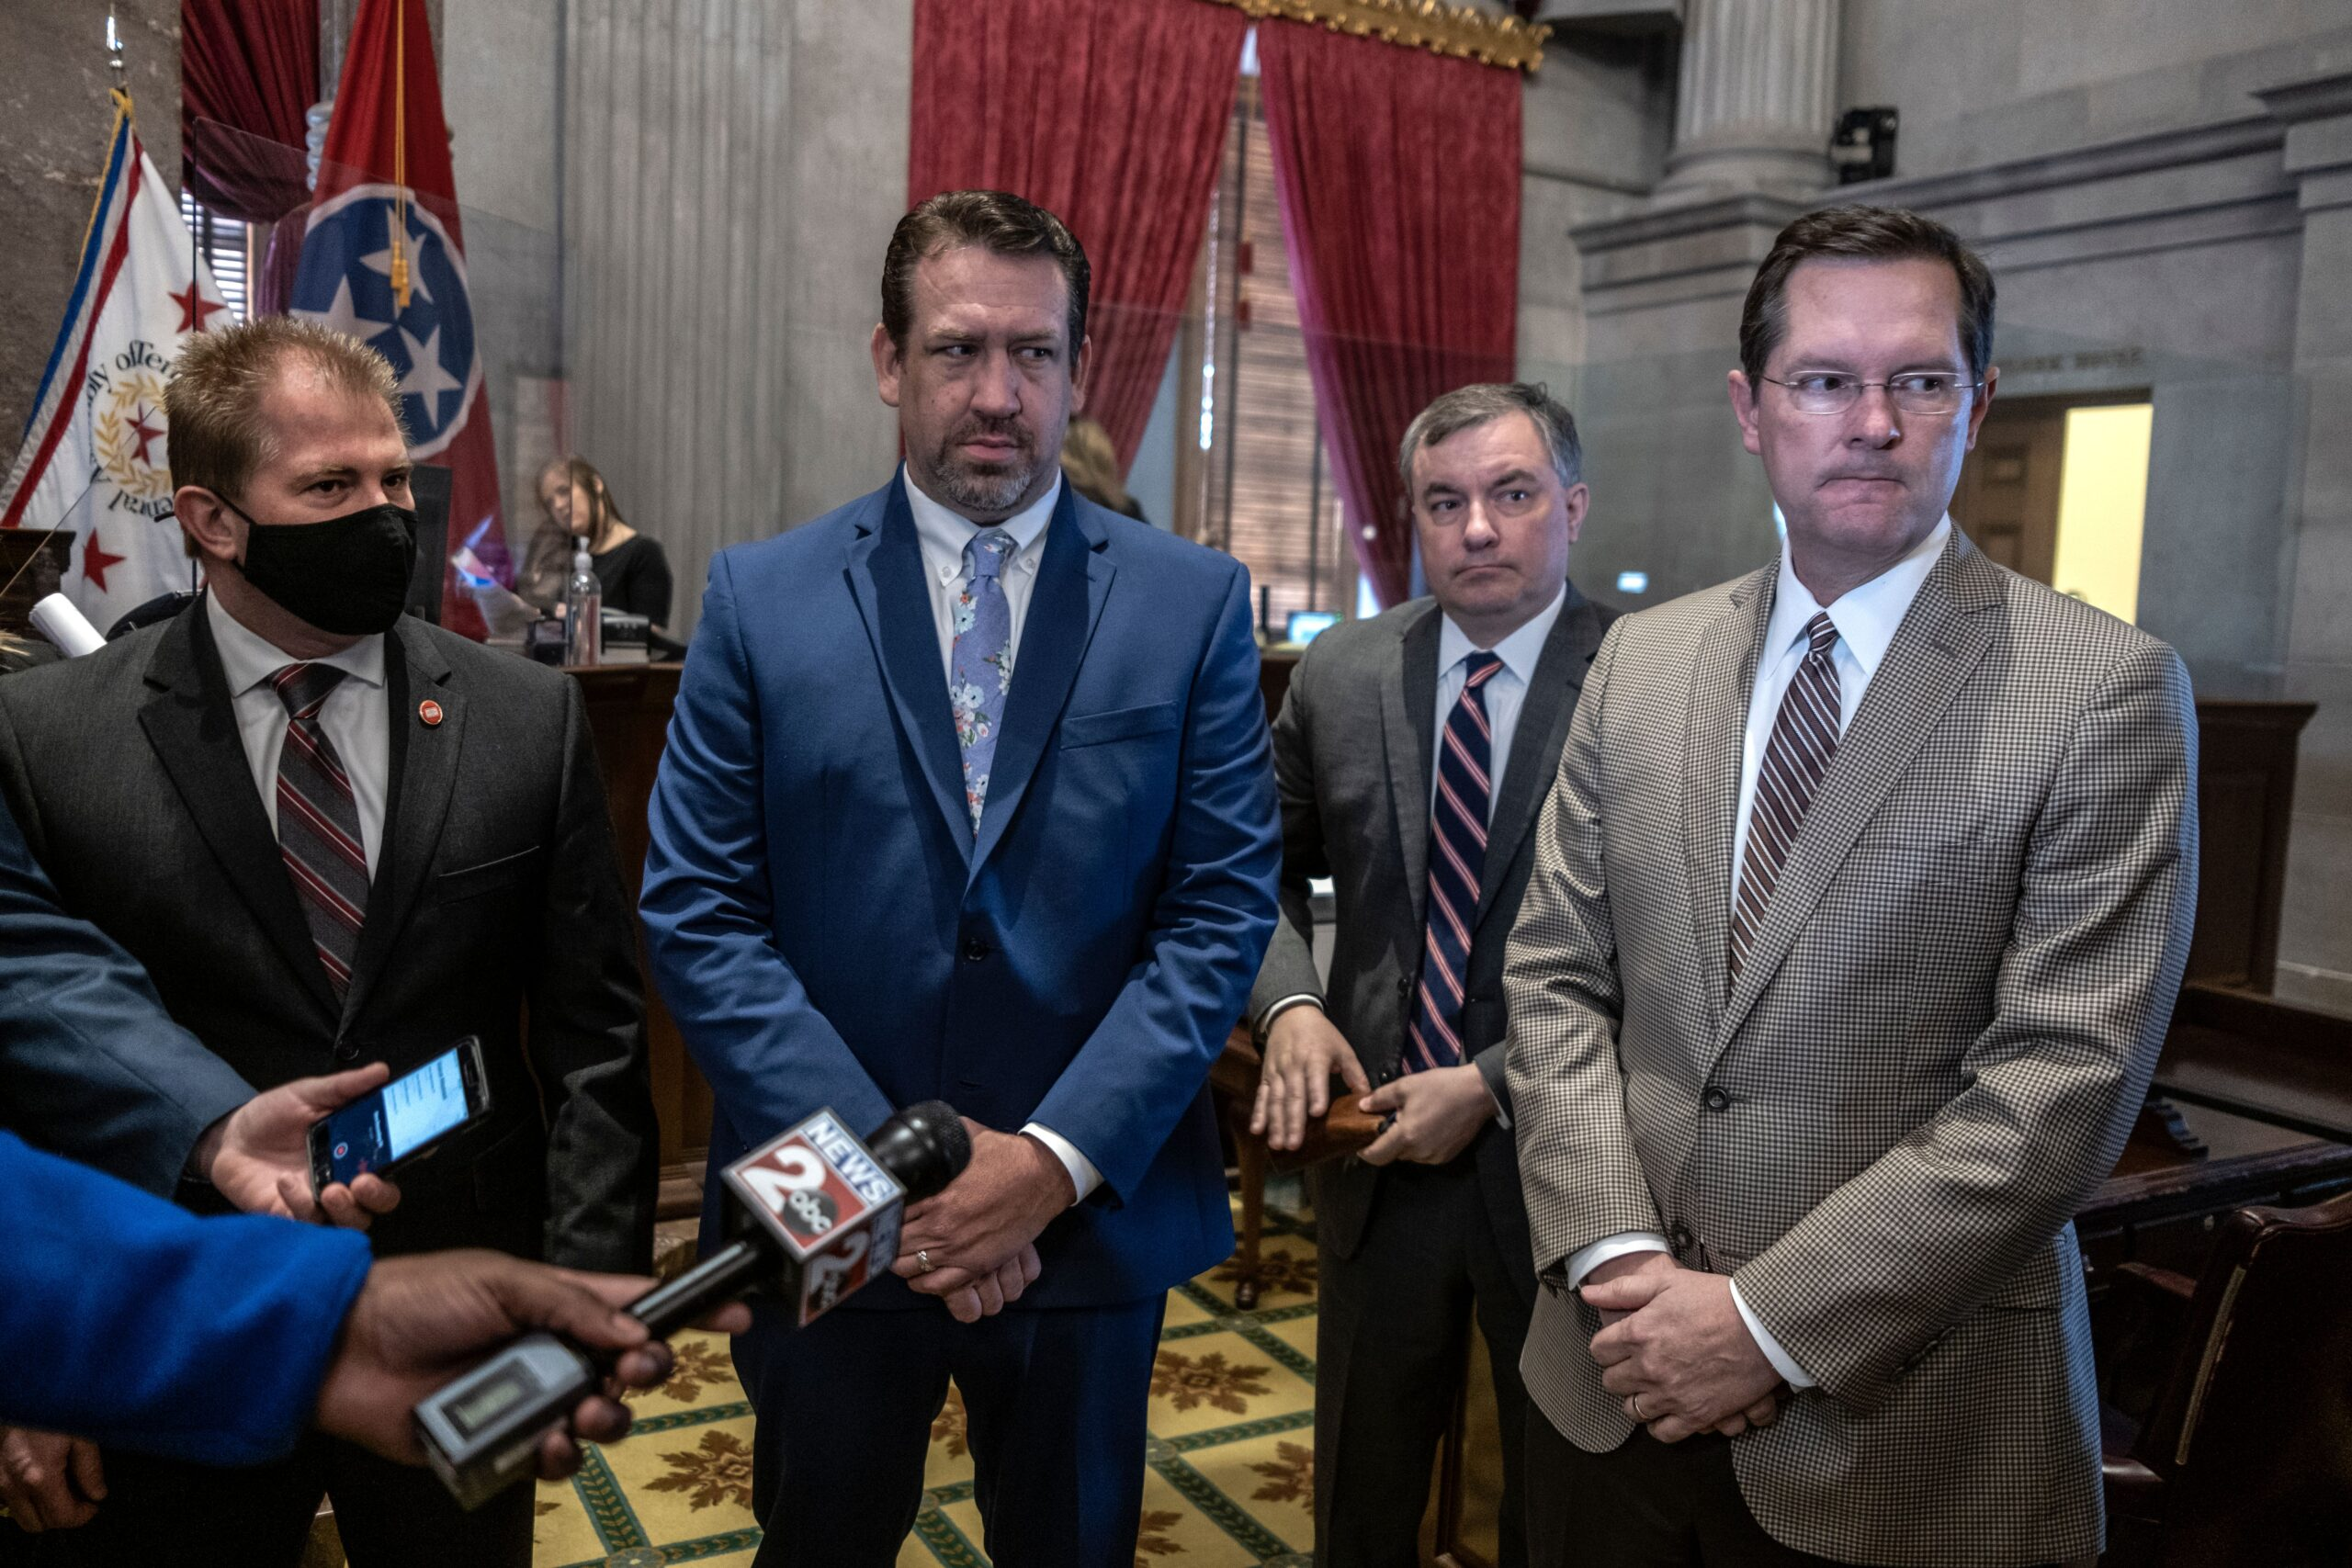 House Republican Caucus leadership, from left: House Majority Leader William Lamberth, Caucus Chair Jeremy Faison, Assistant Majority Leader Ron Gant, and Speaker of the House Cameron Sexton. (Photo: John Partipilo)